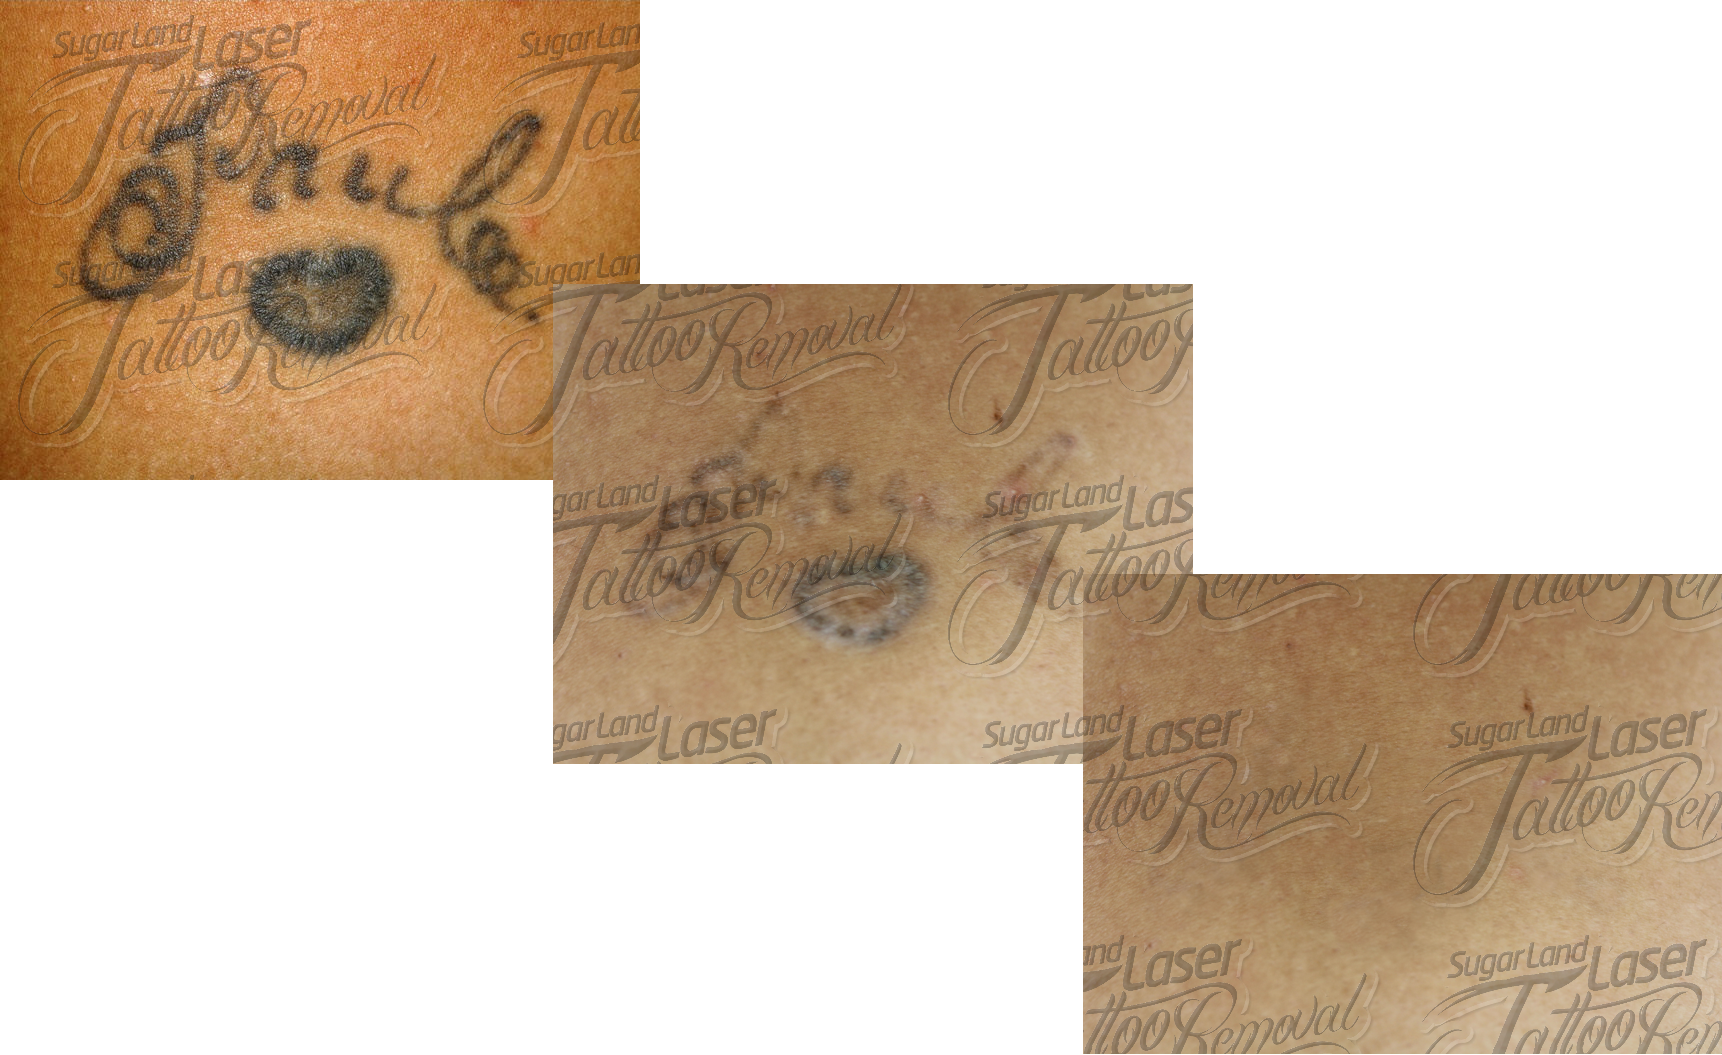 ... tattoo removal 1st session tattoo removal 3rd session tattoo removal